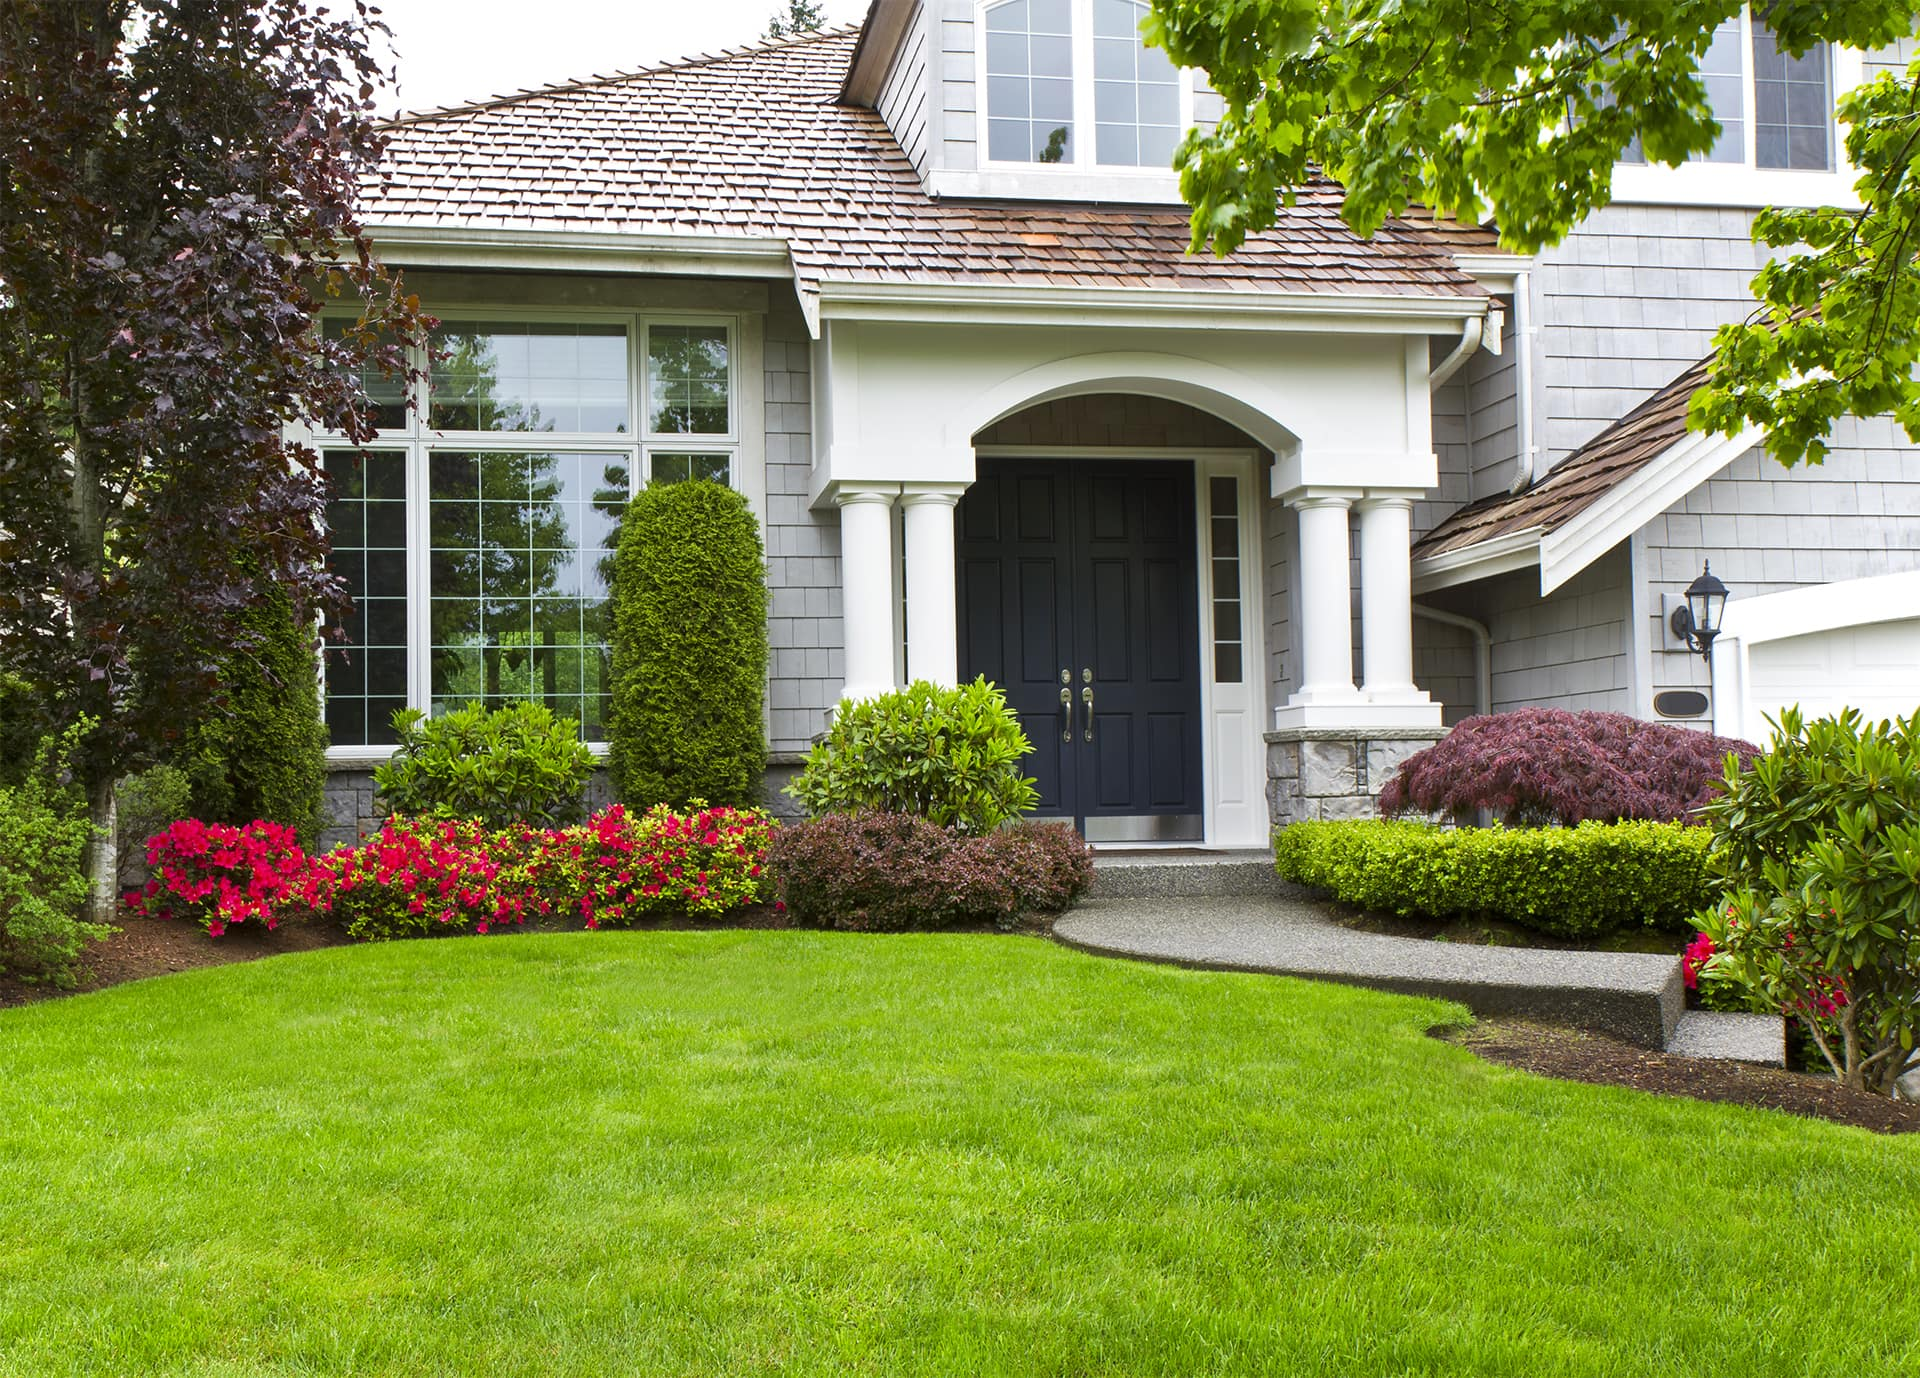 5 Fast Tips for Selling Your Home this Summer